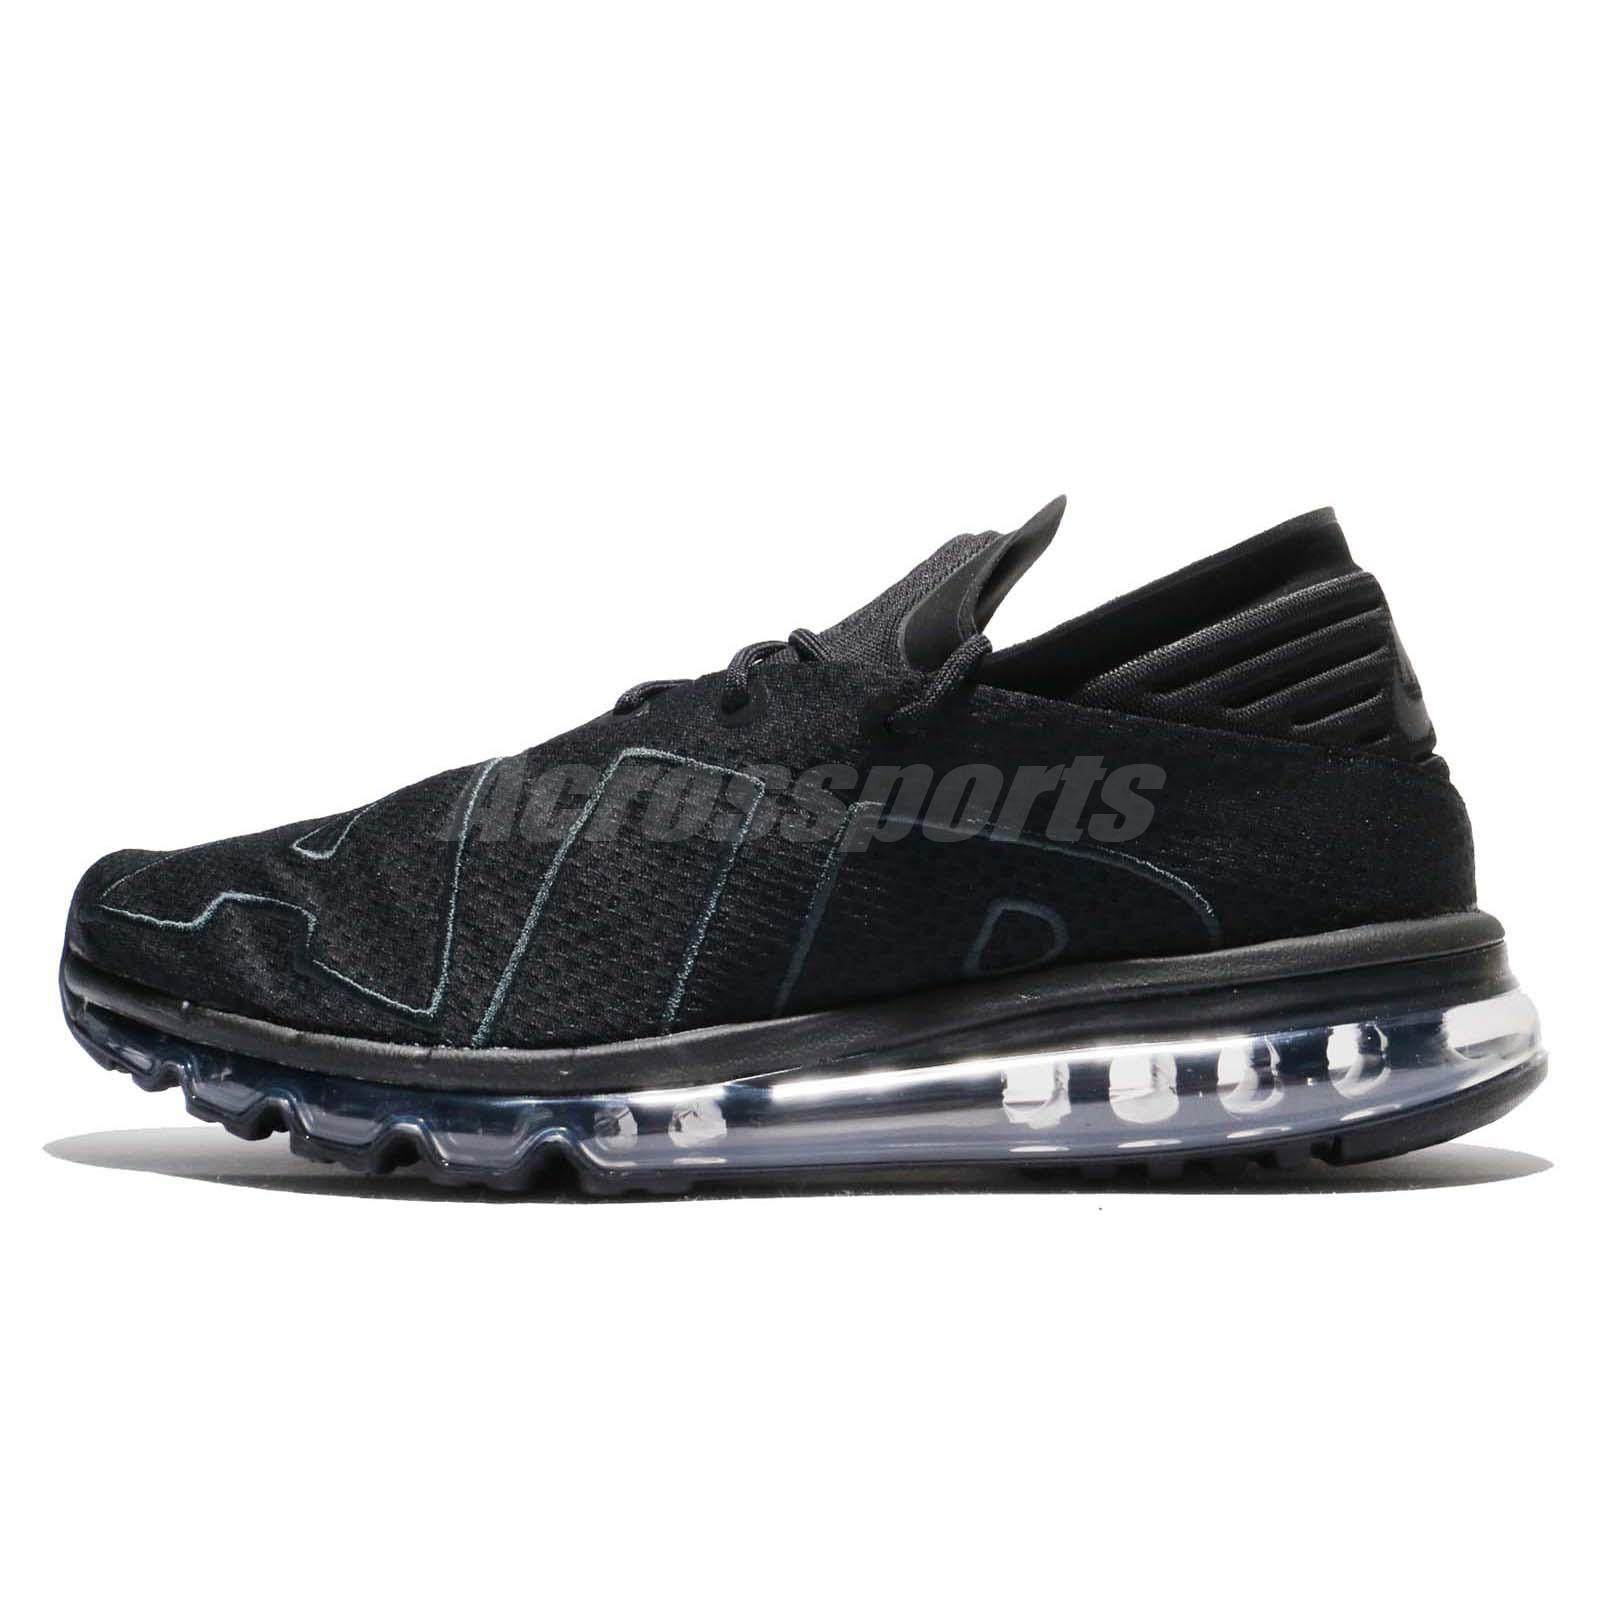 release date 91f34 684ba Nike Air Max Flair Black Anthracite More Uptempo Men Running Shoes 942236 -002